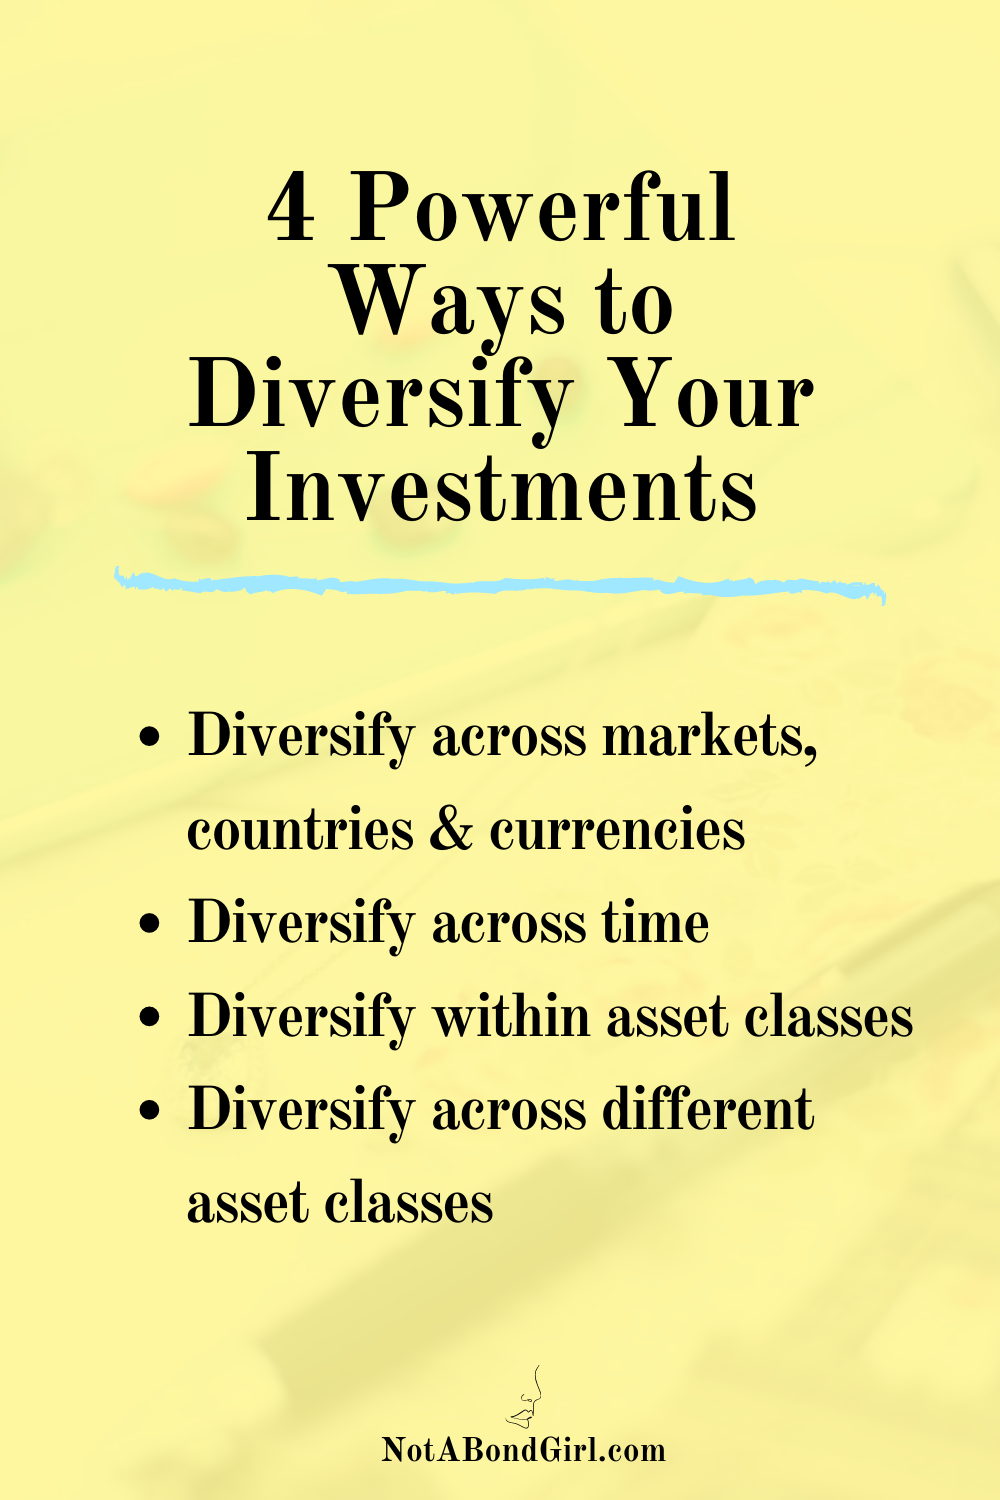 4 Powerful Ways to Diversify Your Investments & Reduce Risk